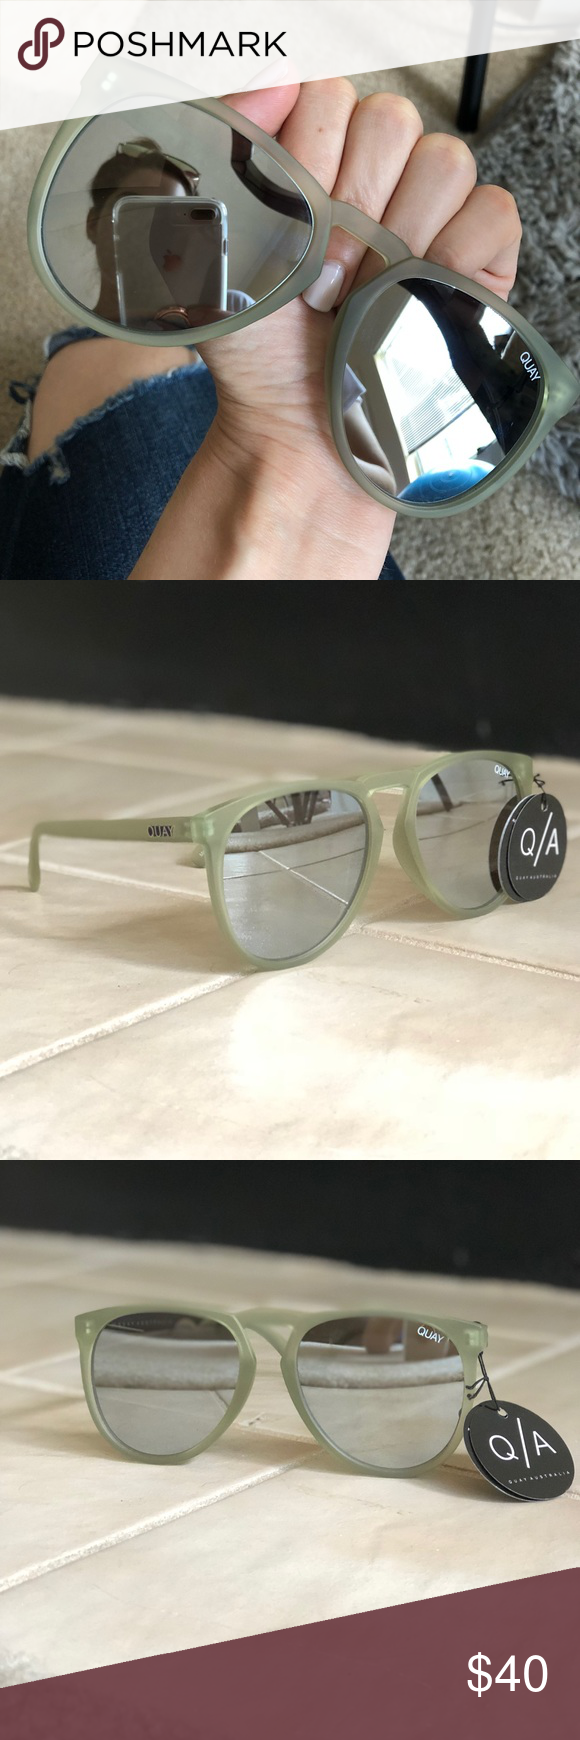 a69036719c Quay PHD Olive Mirror Sunglasses New with tag Quay Glasses